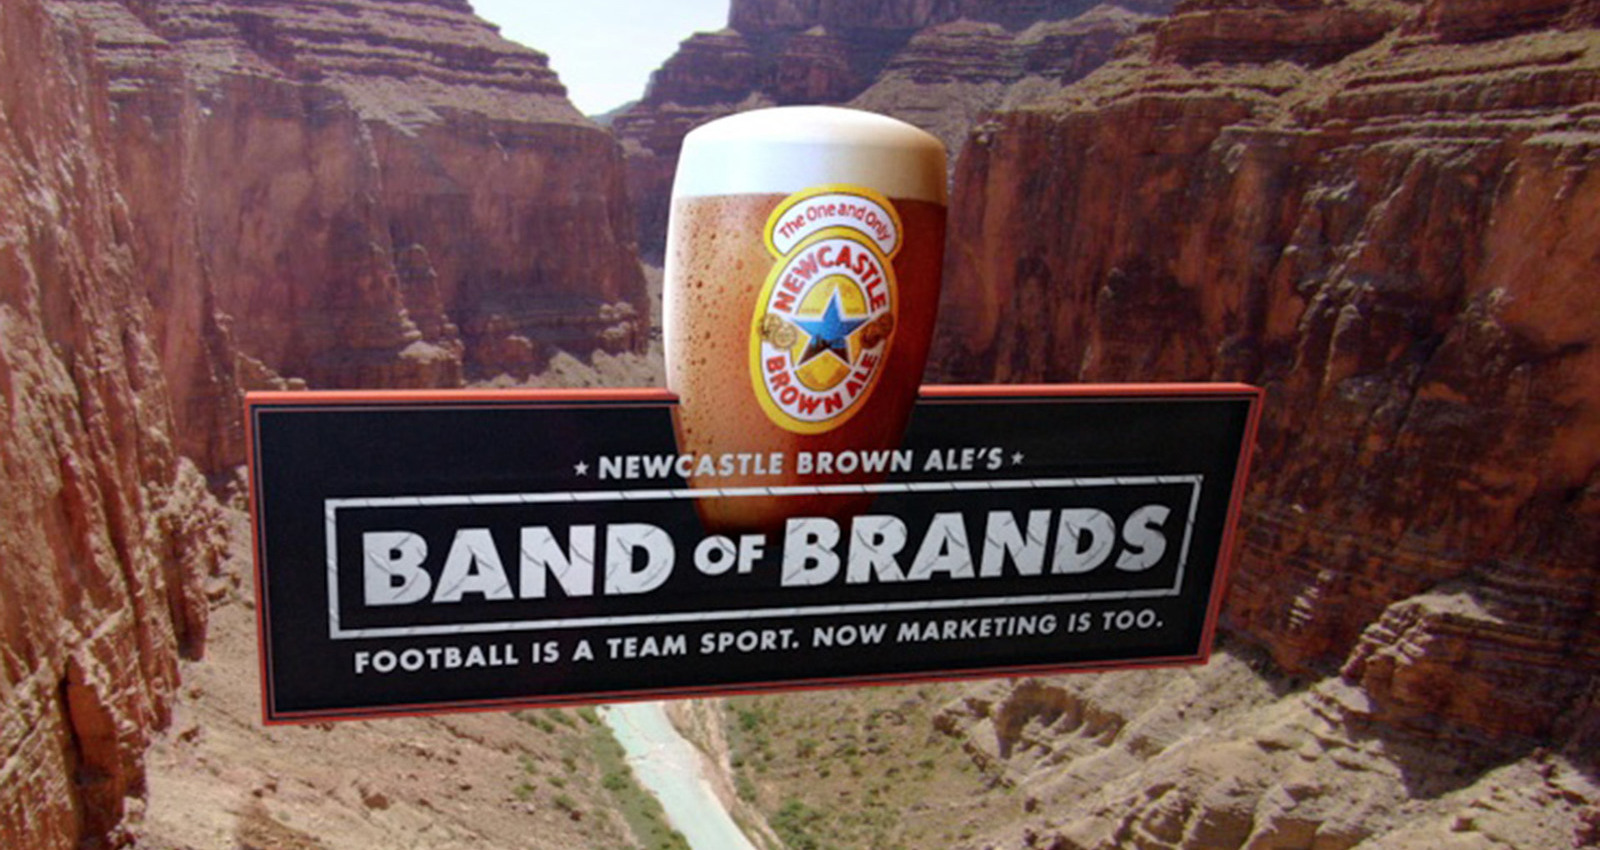 Newcastle Brown Ale: Band of Brands